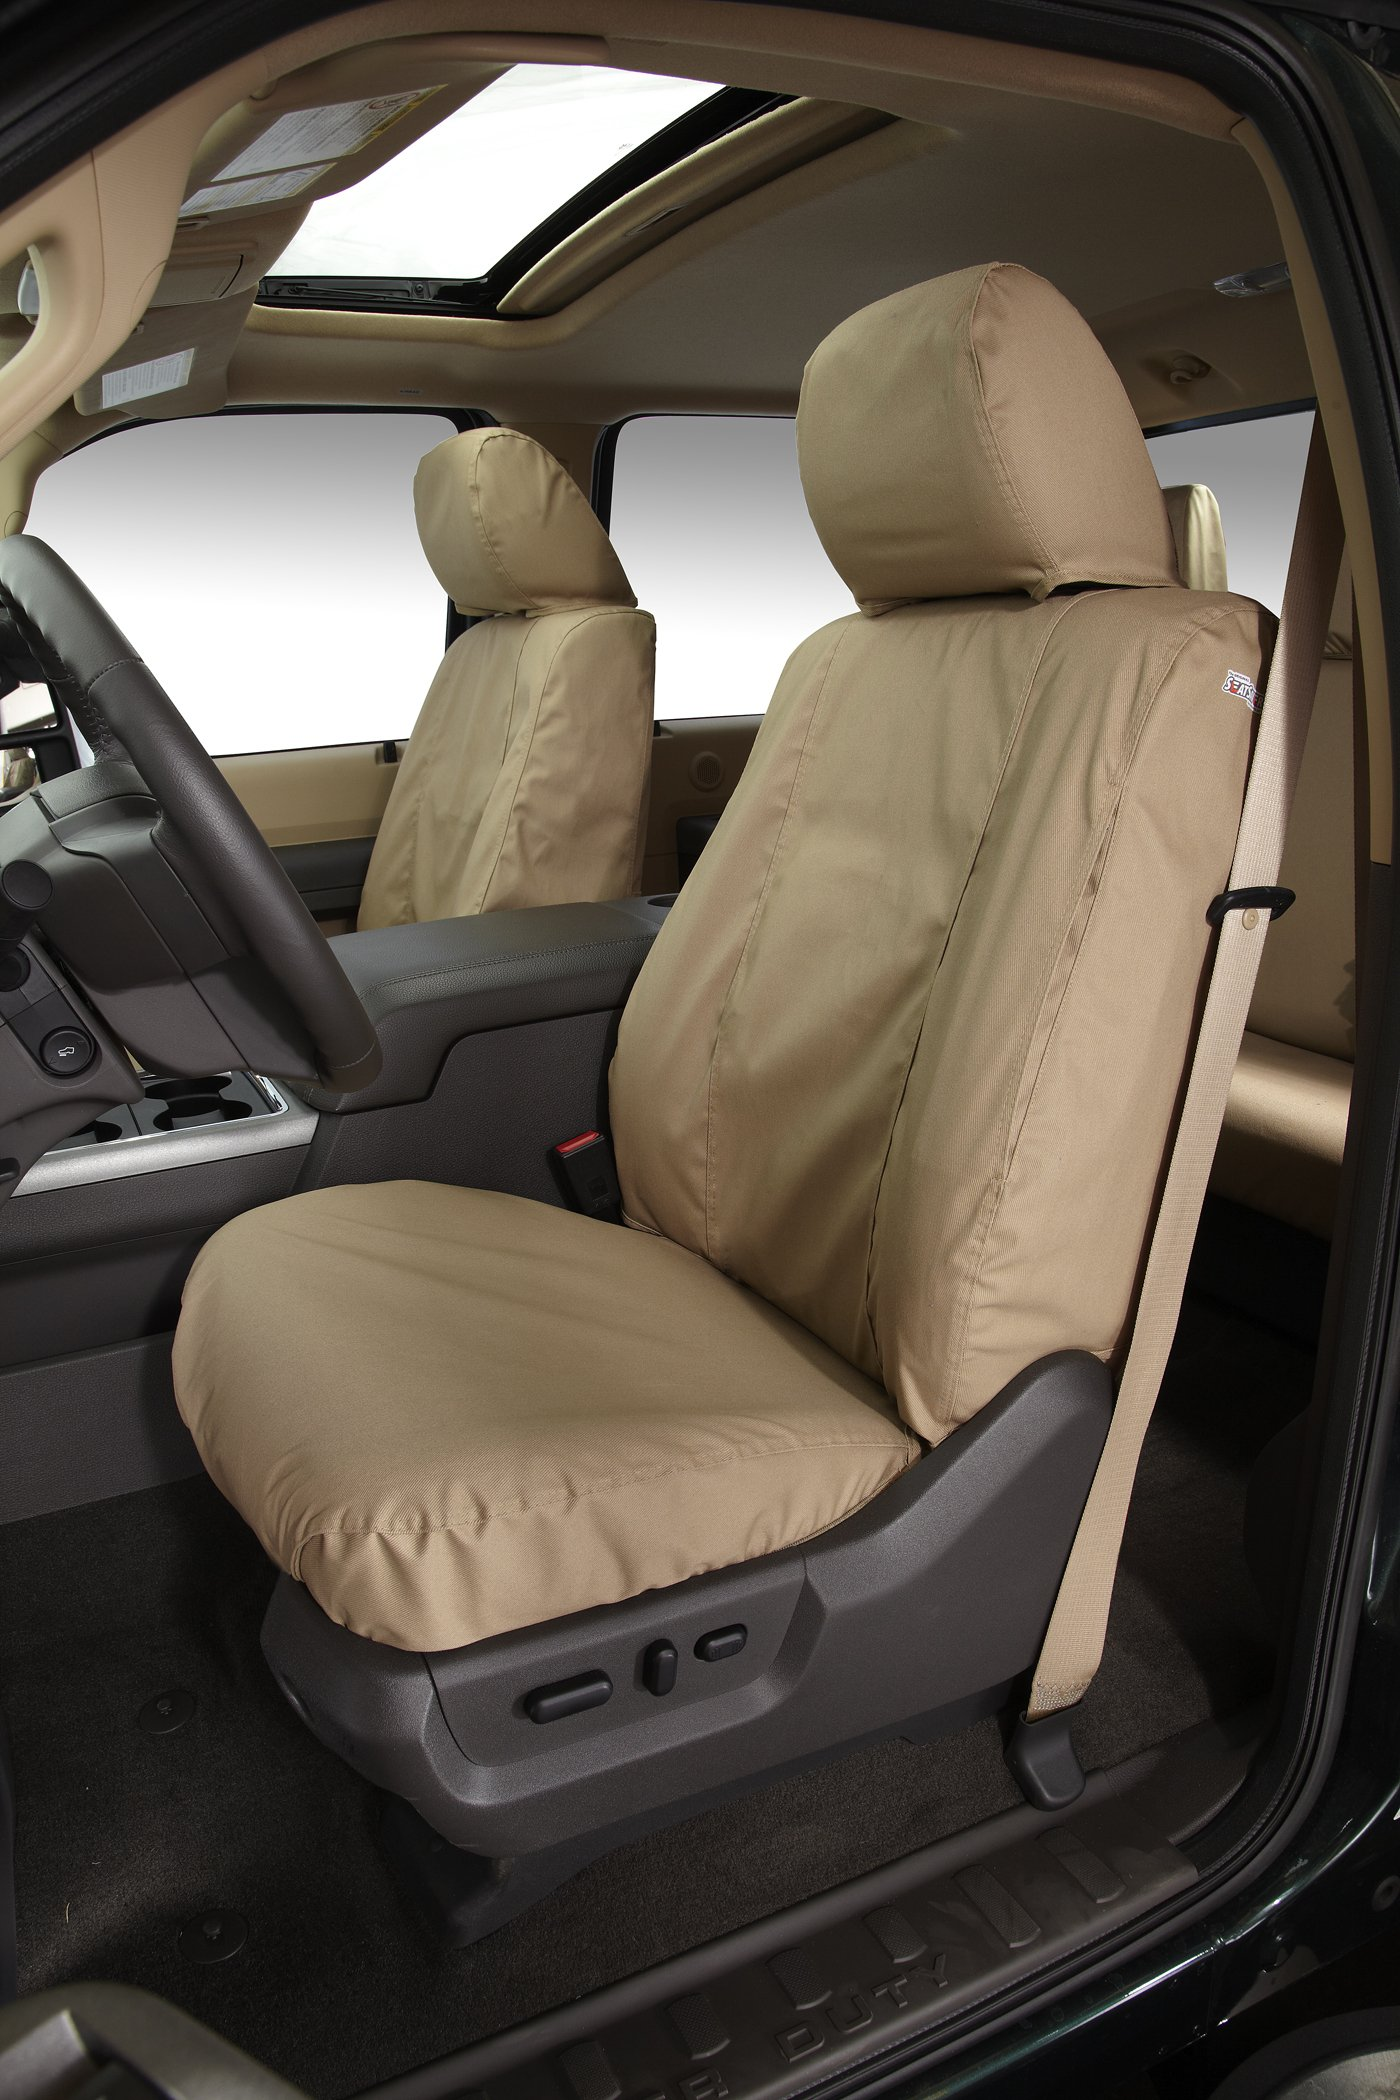 Covercraft SS8348WFGY Seat Cover, Vehicle Protection, Seat Covers